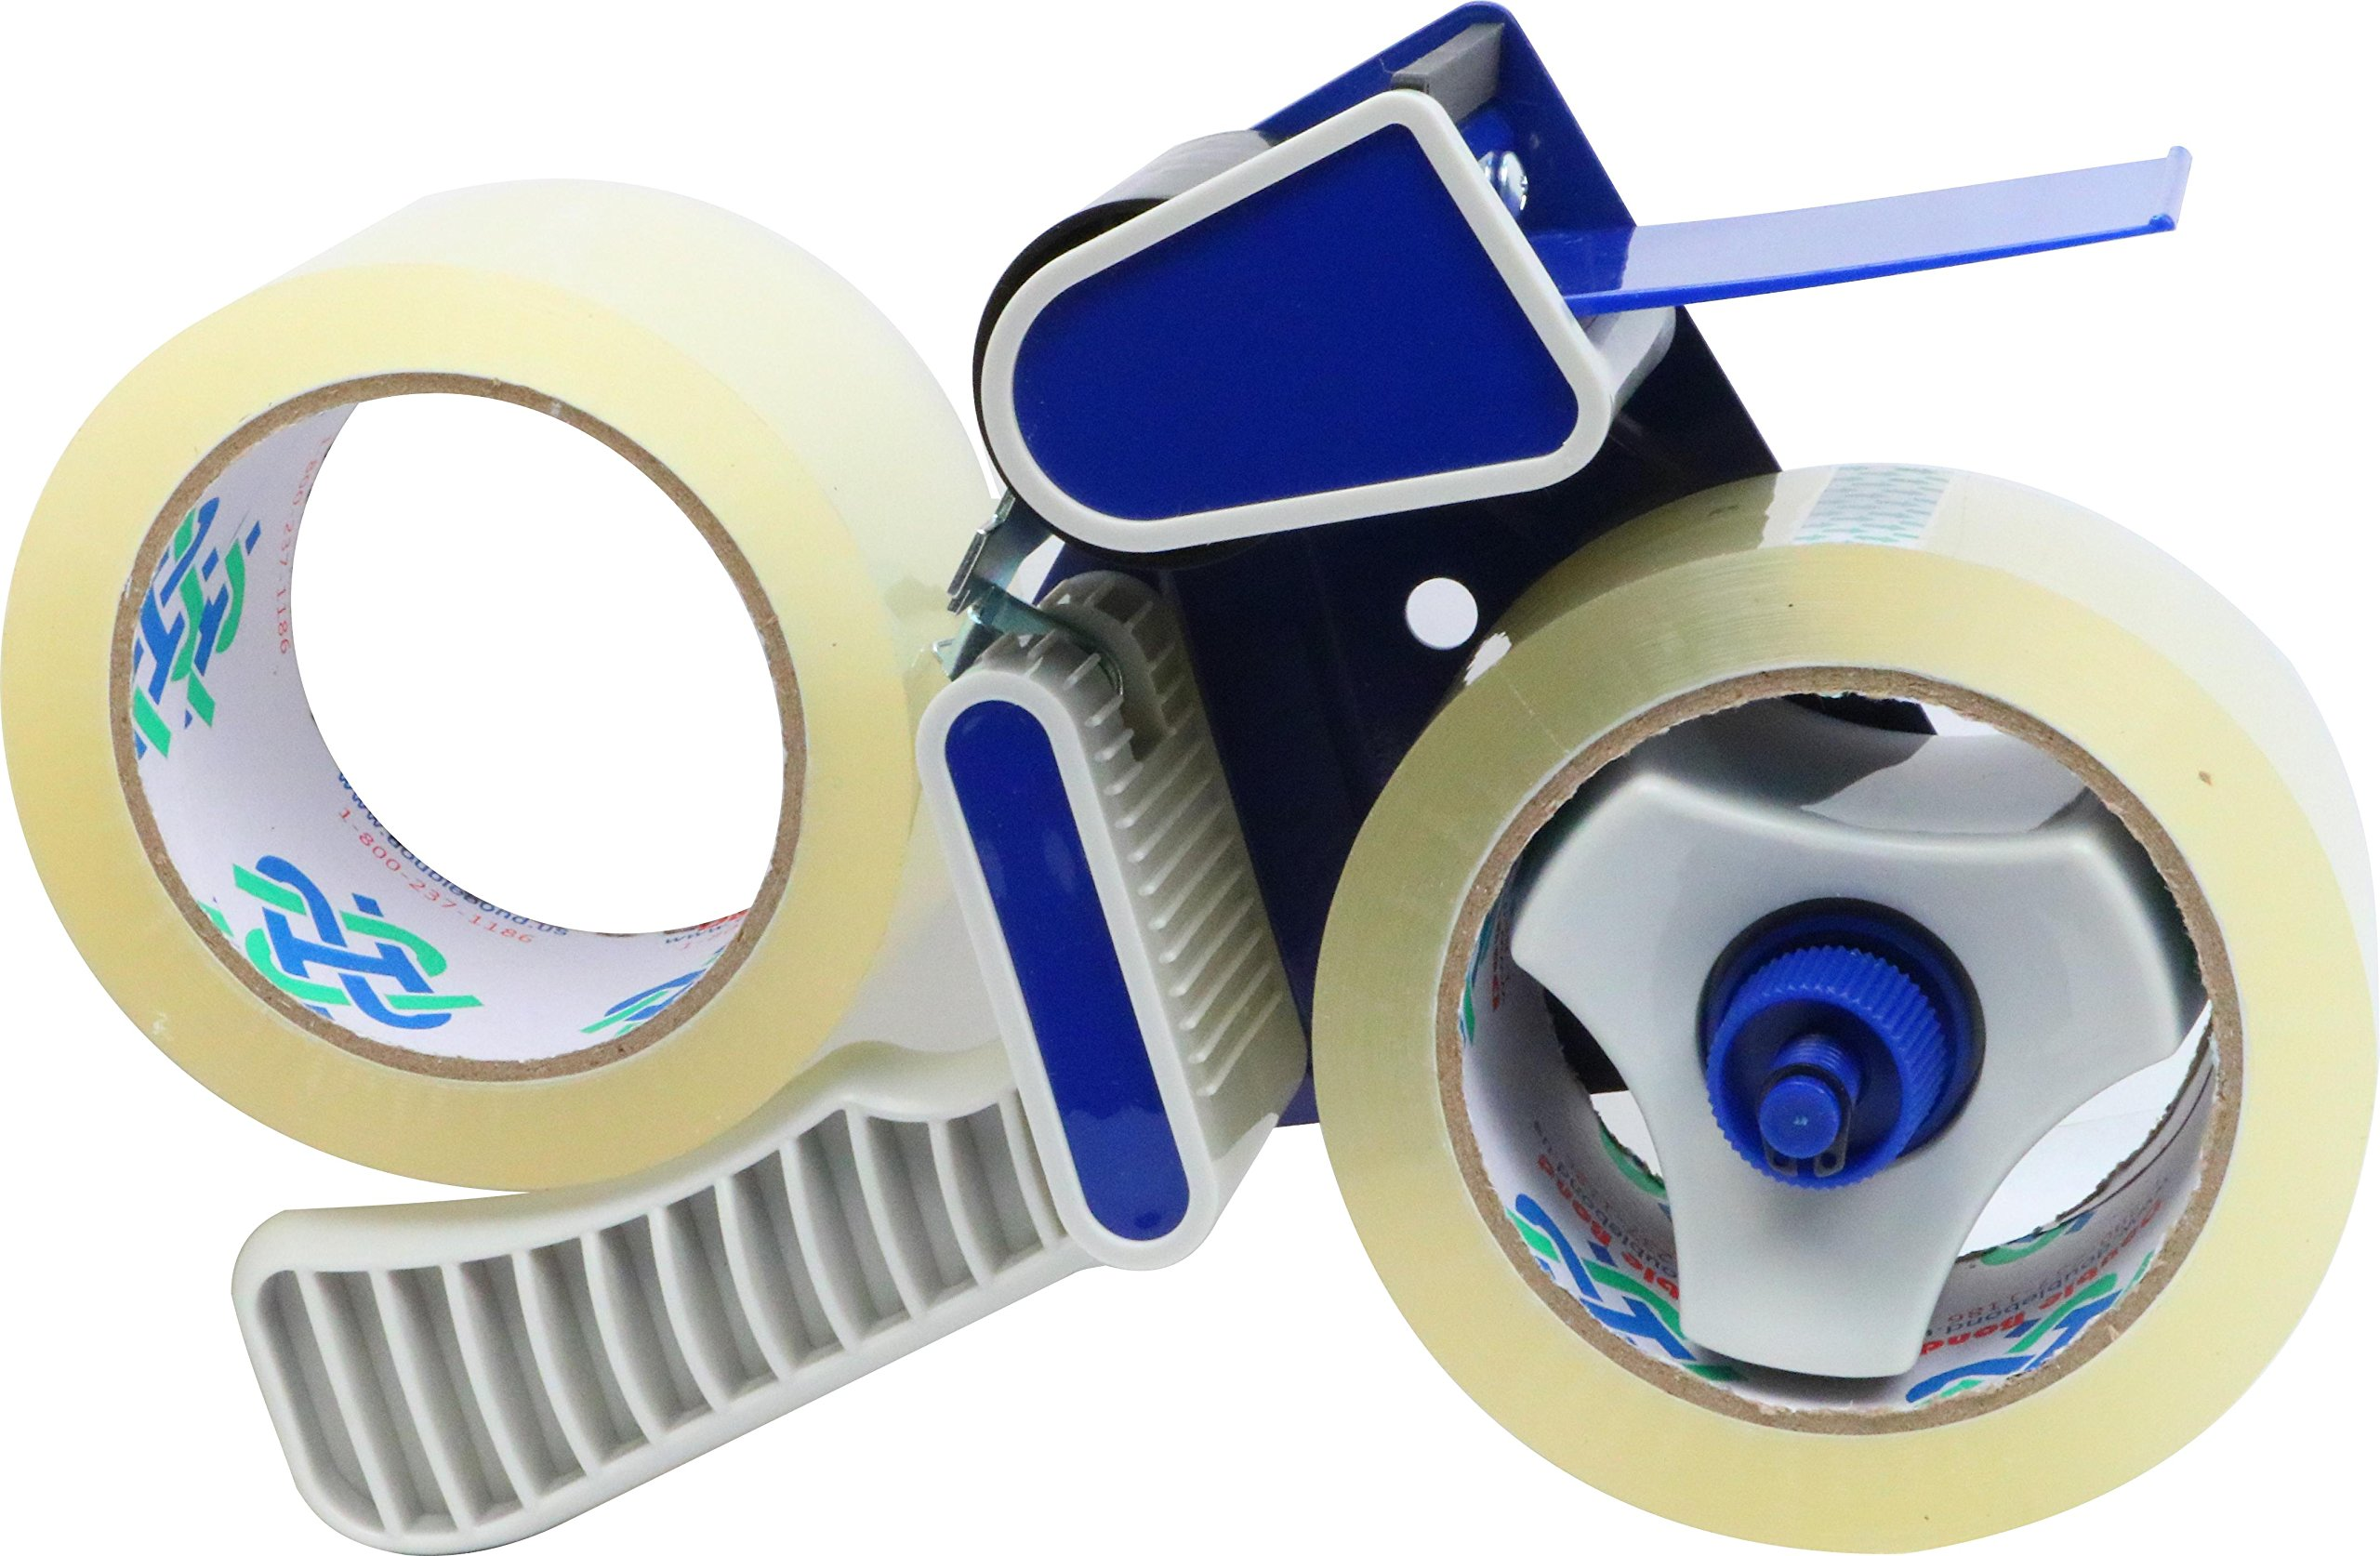 2-Inch Hand-Held Tape Dispenser + 2 Rolls Tape (1.8 Mil)